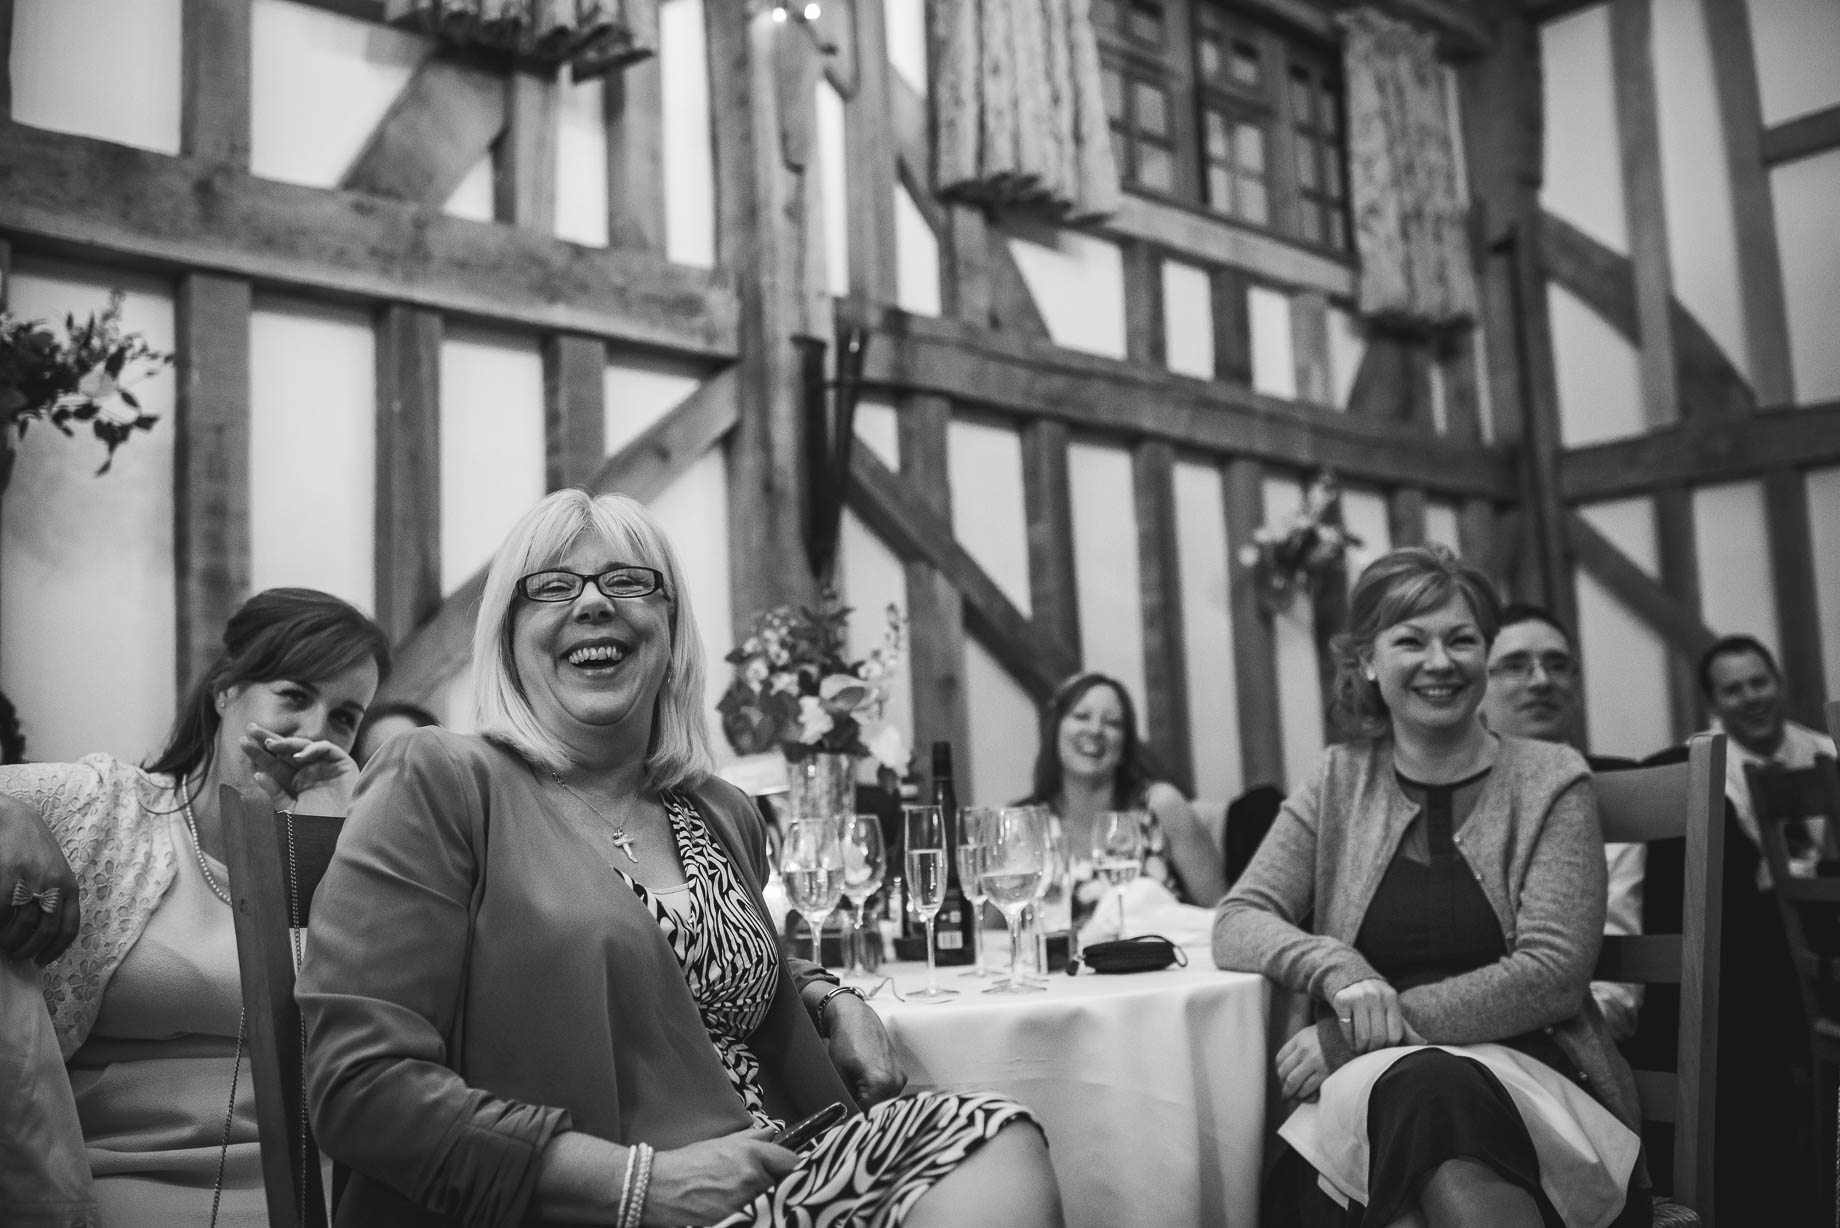 Surrey Wedding Photography by Guy Collier - Becca and James (138 of 145)